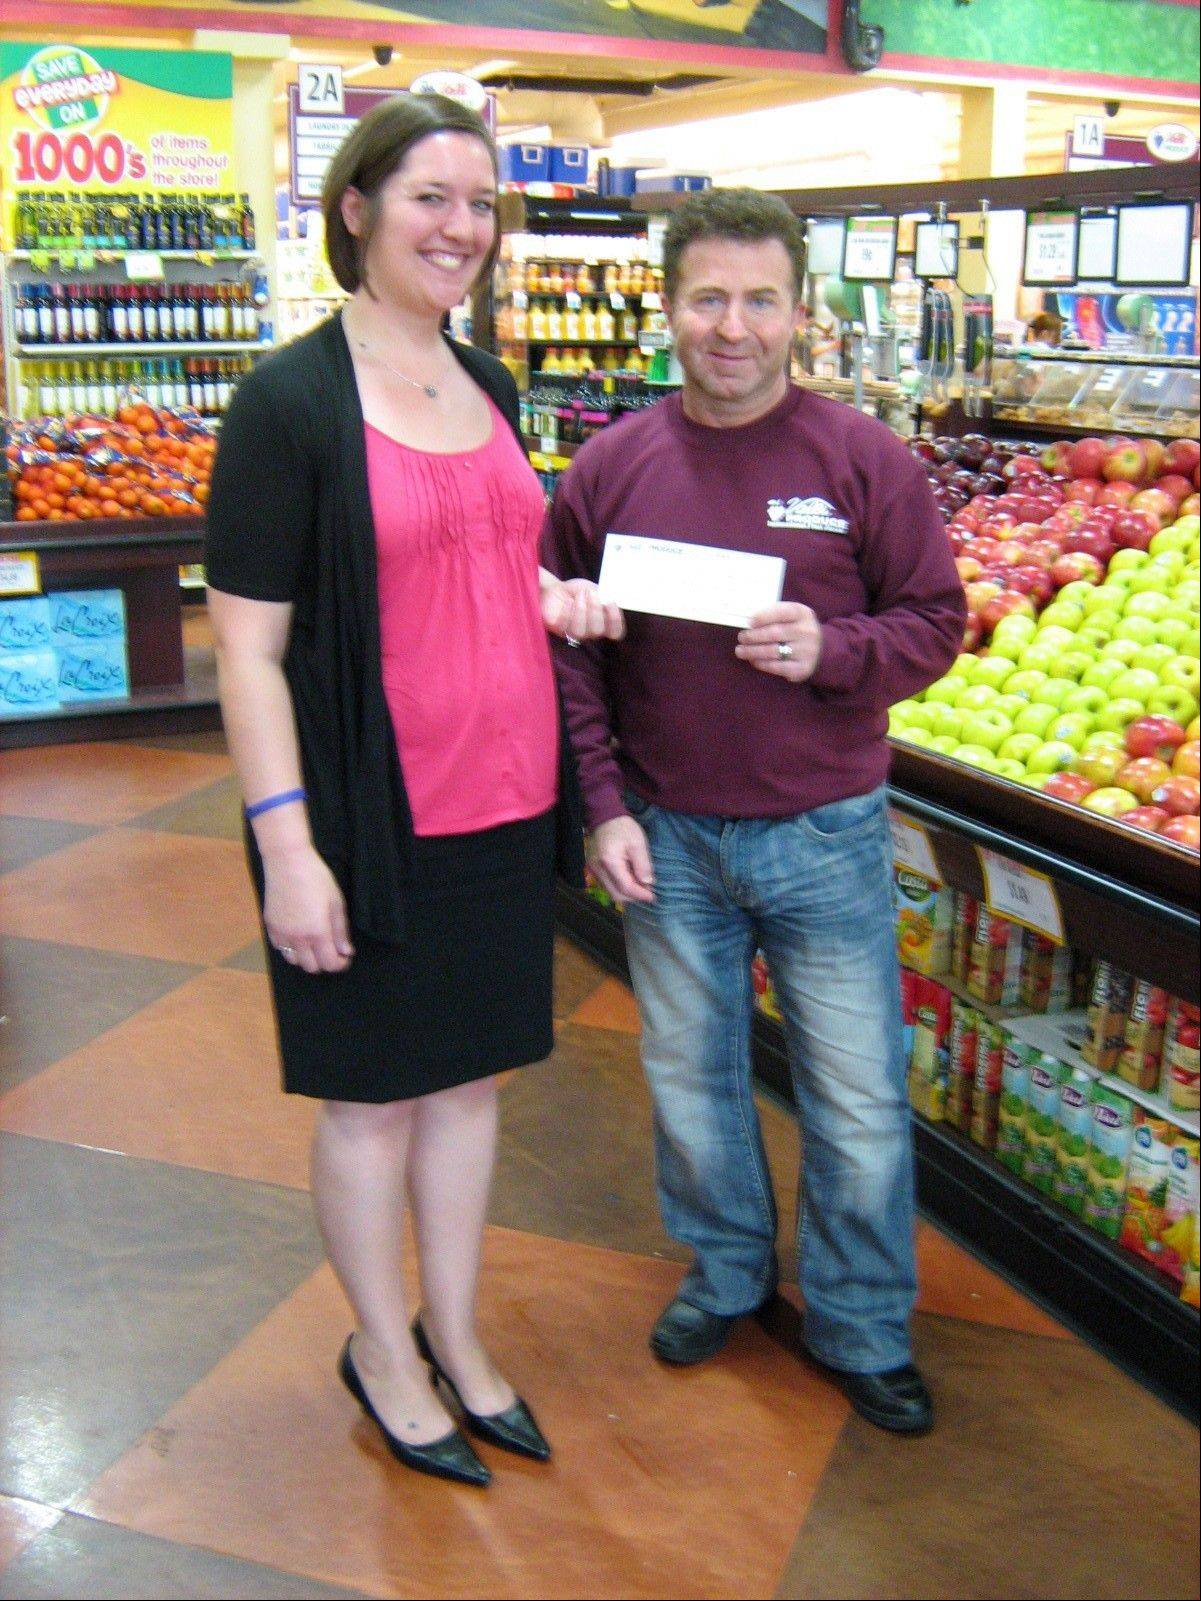 Valli Produce co-founder Frank Chilelli hands a check to Julie Lorentz from the American Cancer Society. Valli Produce participated in a fundraising campaign to help support the society fight against breast cancer.